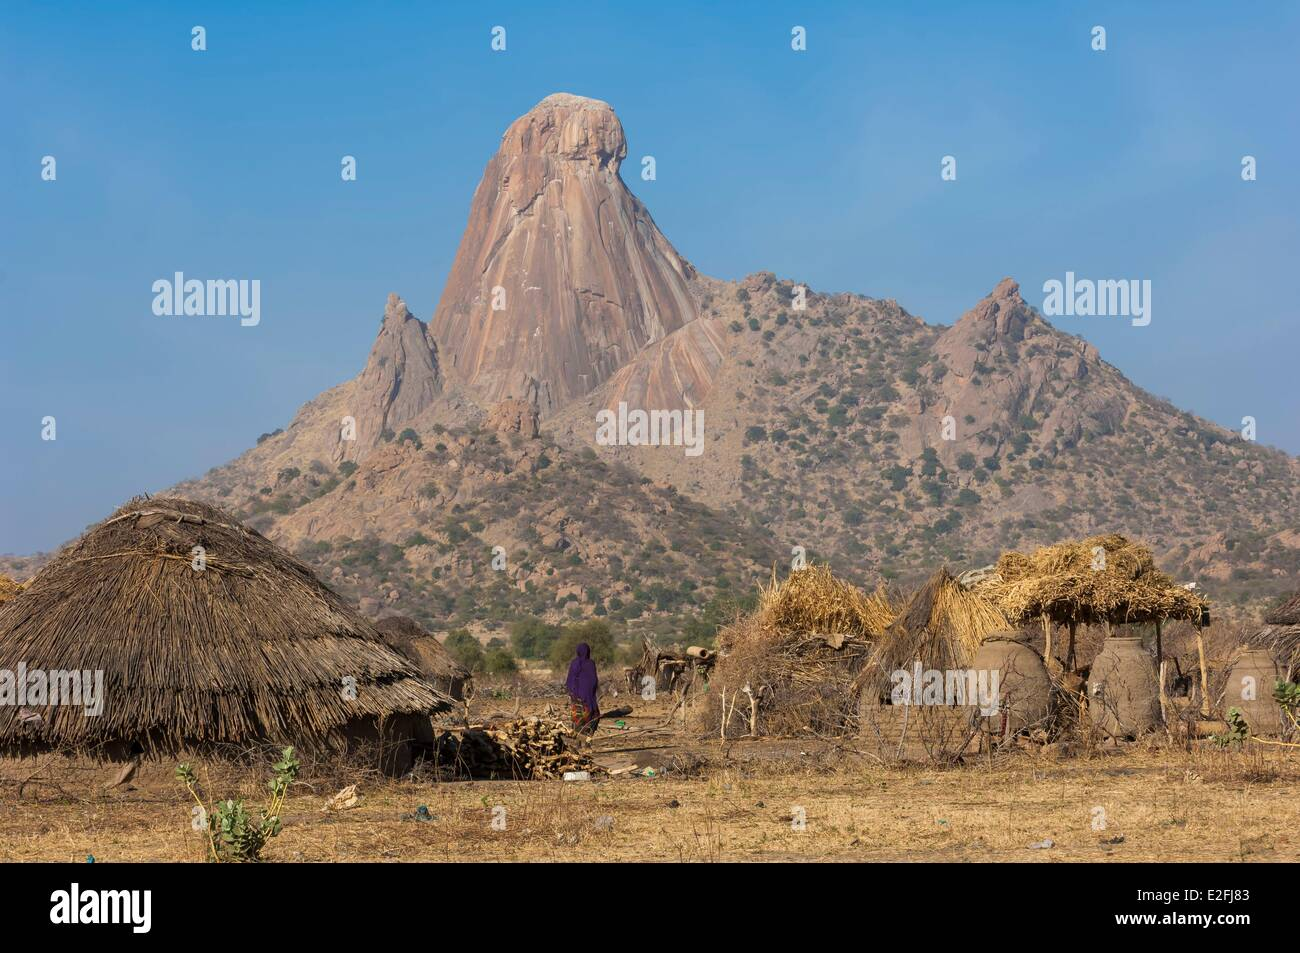 Chad, Sahel, Mataya, village at the foot of the granite spires of Abtouyour - Stock Image